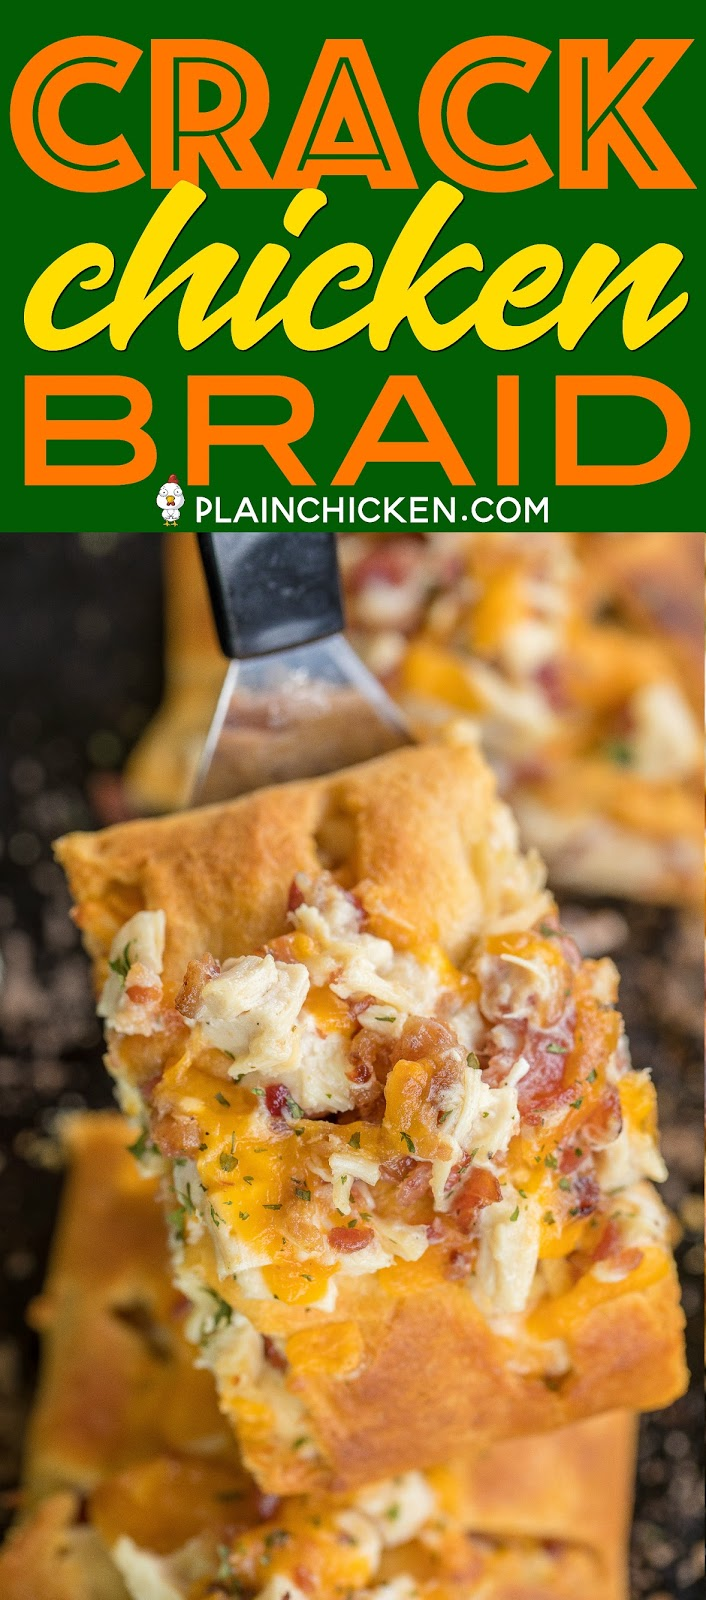 Cracked Out Chicken Braid recipe - crescent rolls stuffed with chicken, cheddar, bacon and ranch. SO easy!!! Great way to use up leftover chicken. We make this at least once a week! It is THE BEST!!! #chickenrecipe #kidfriendlyrecipe #dinnerrecipe #bacon